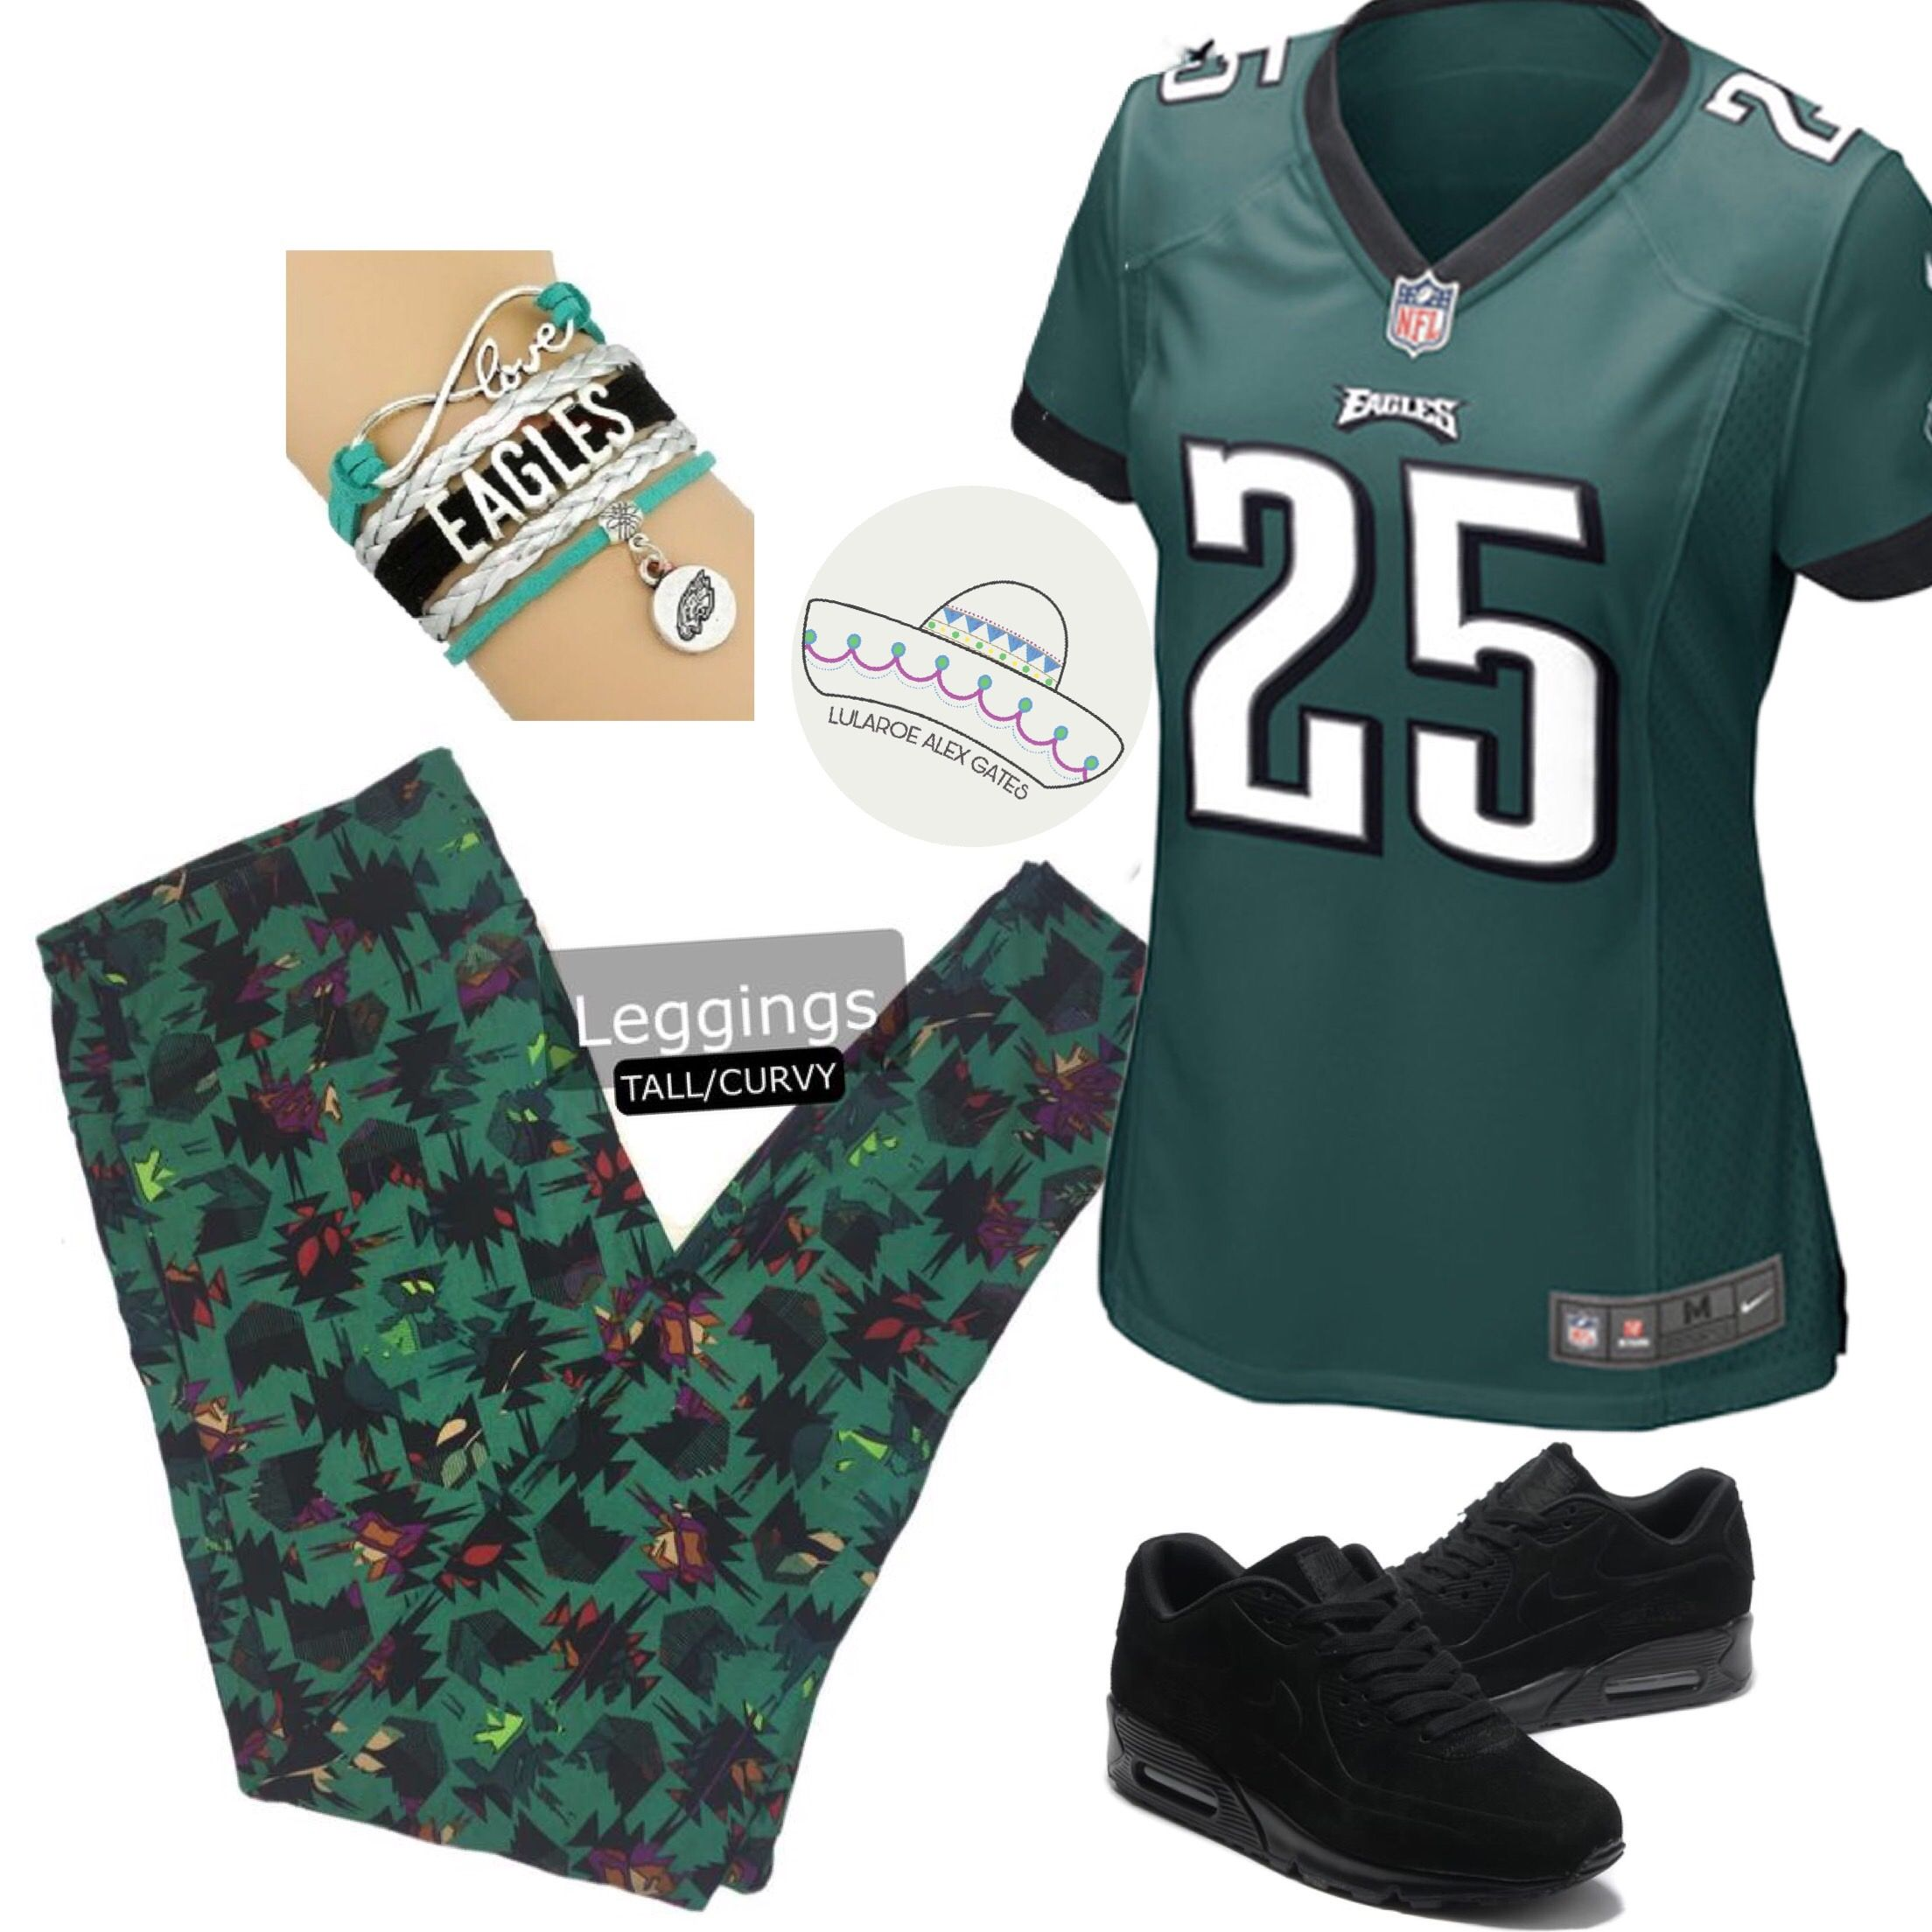 sneakers for cheap a1199 43fce Philadelphia Eagles Outfit. Super Bowl Outfit. Eagles Jersey ...